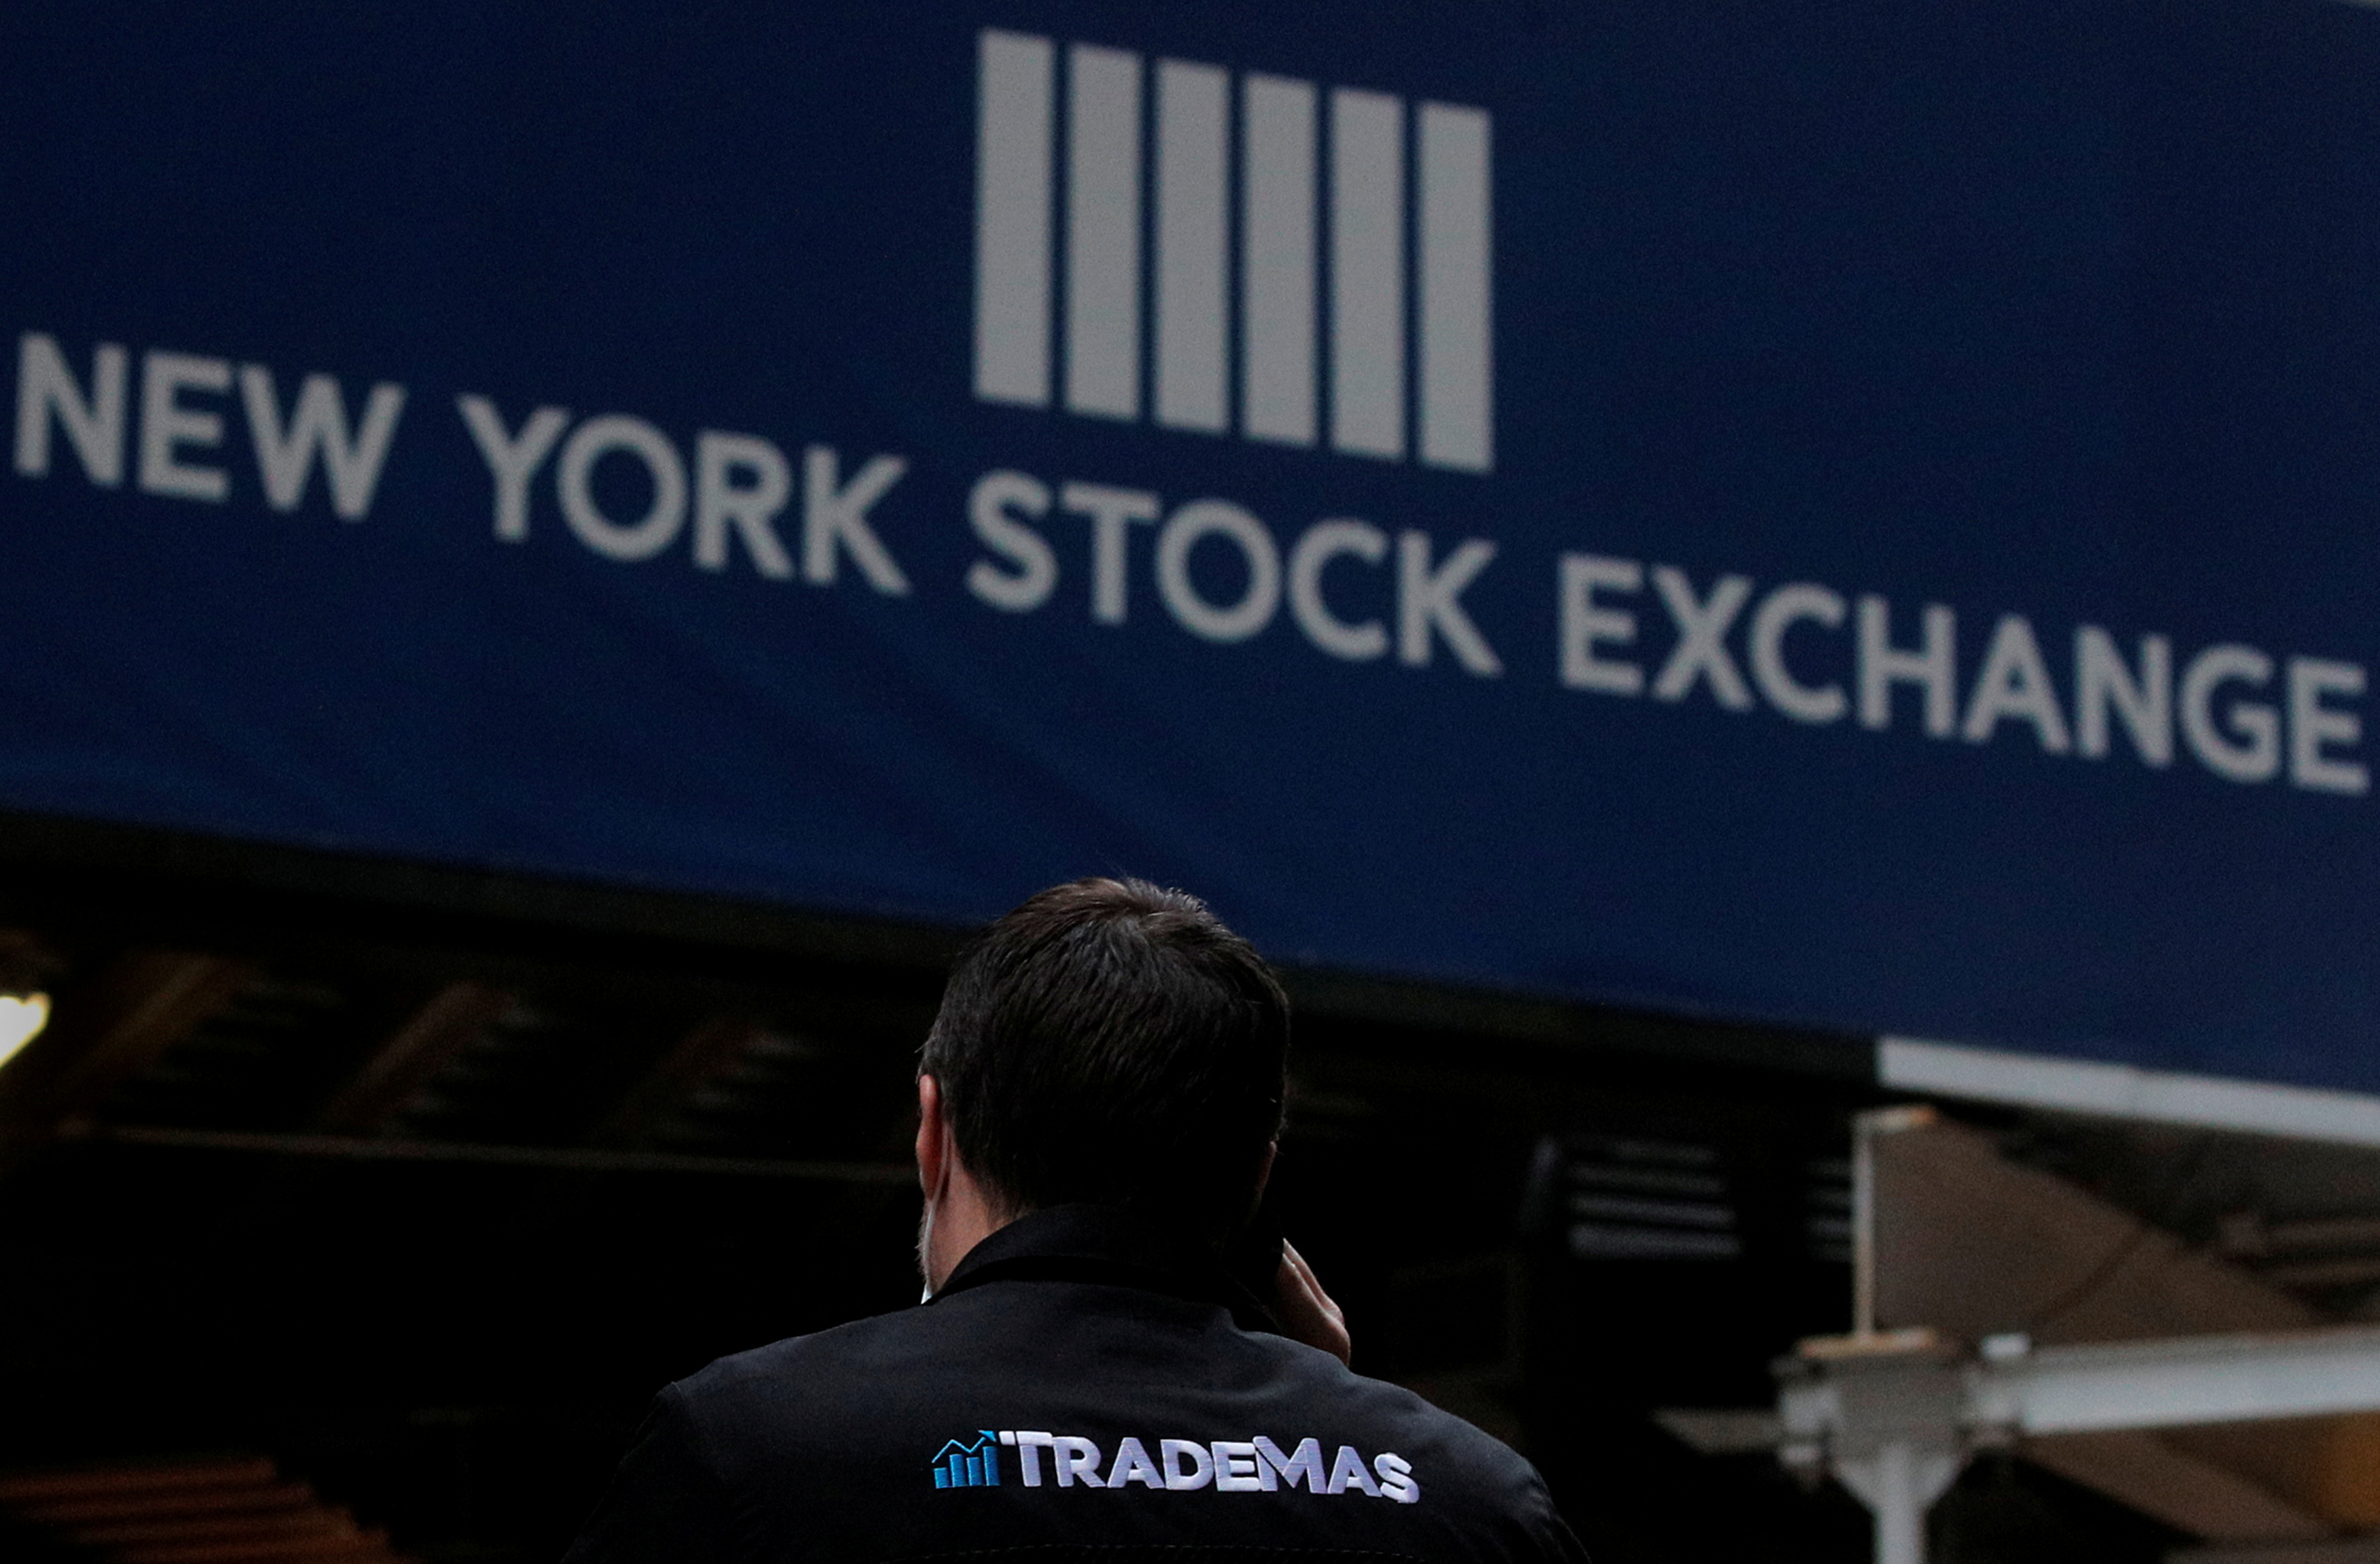 Trader Frank Masiello talks on his phone on Wall St. outside the New York Stock Exchange (NYSE) in New York, U.S., January 15, 2021. REUTERS/Brendan McDermid/File Photo